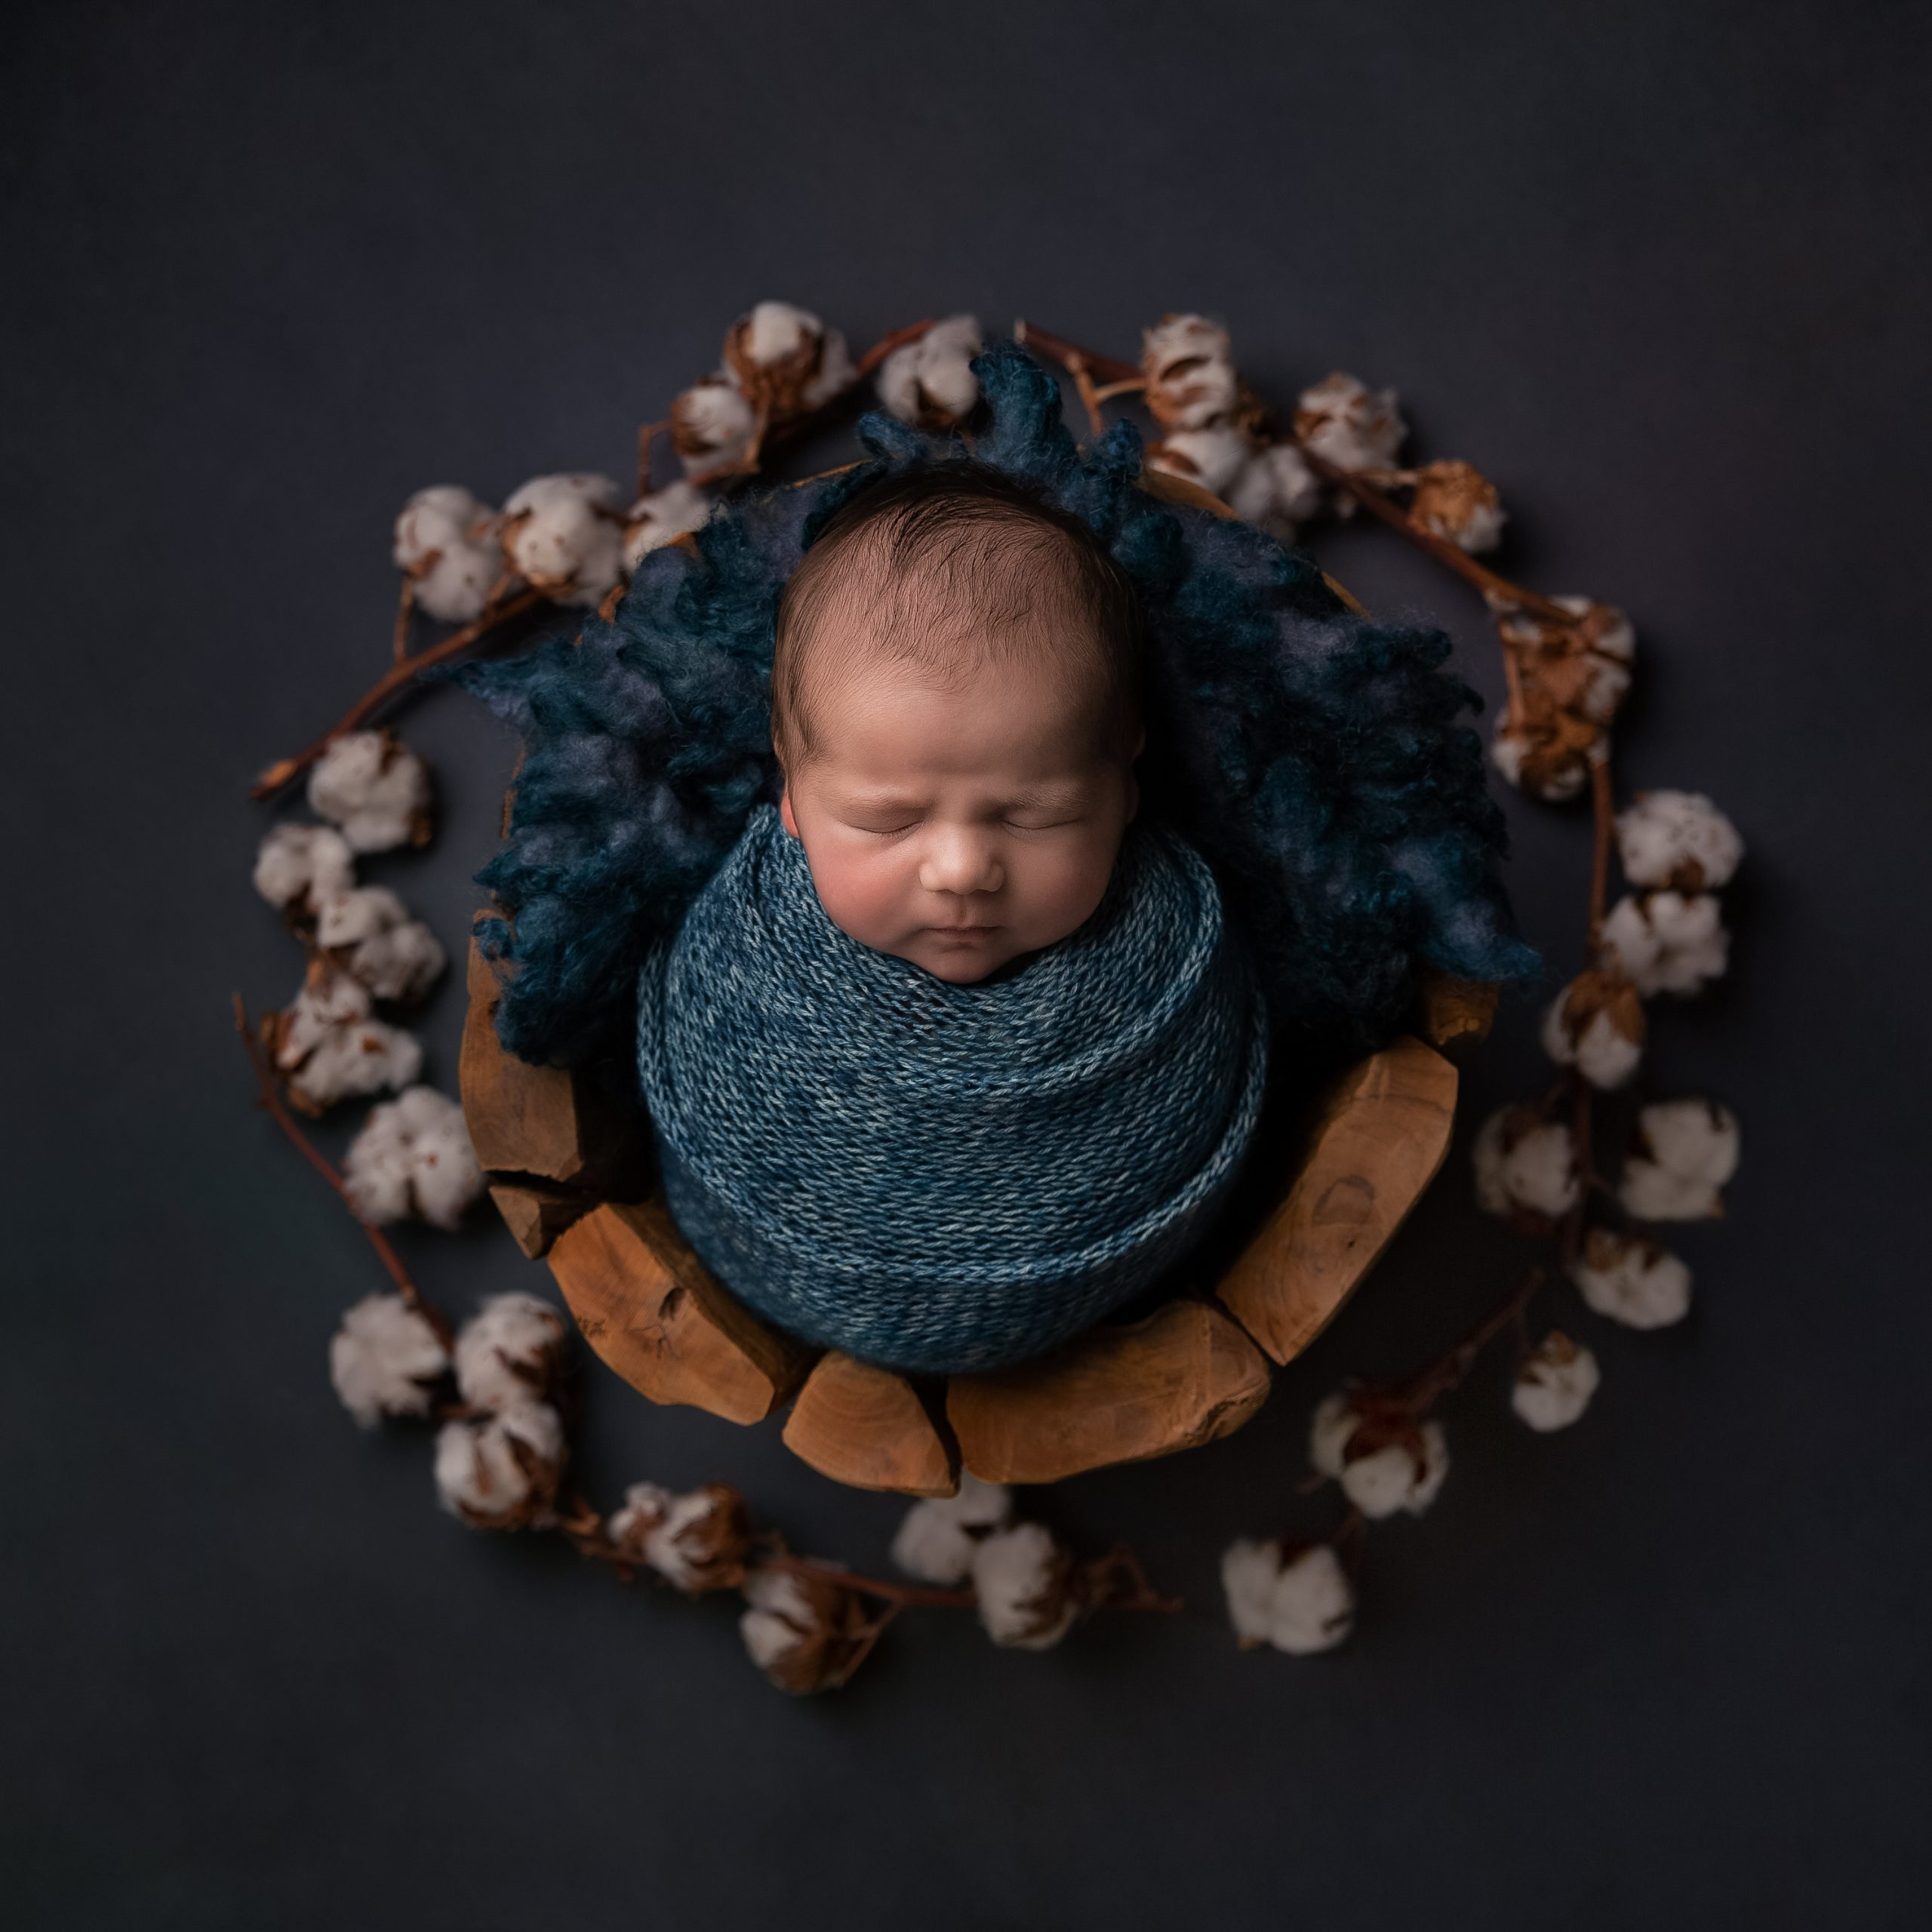 Newborn baby wrapped in blue as part of my Master Craftsman in Newborn Photography panel by award winning photographer